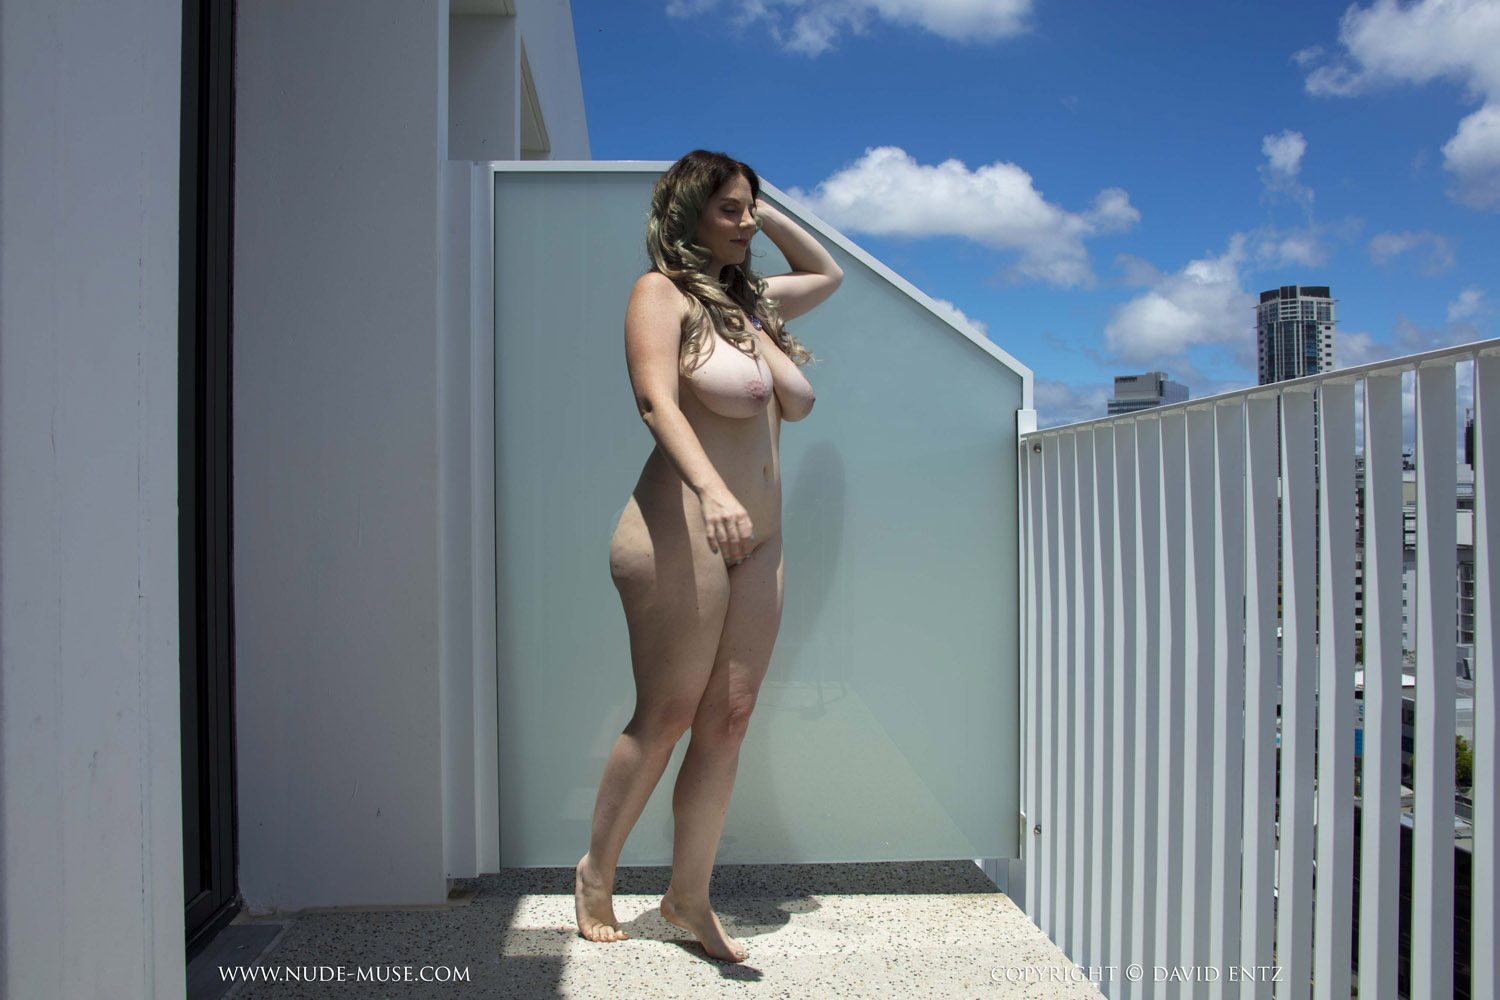 Avalon Balcony Flasher for Nude Muse - Curvy Erotic